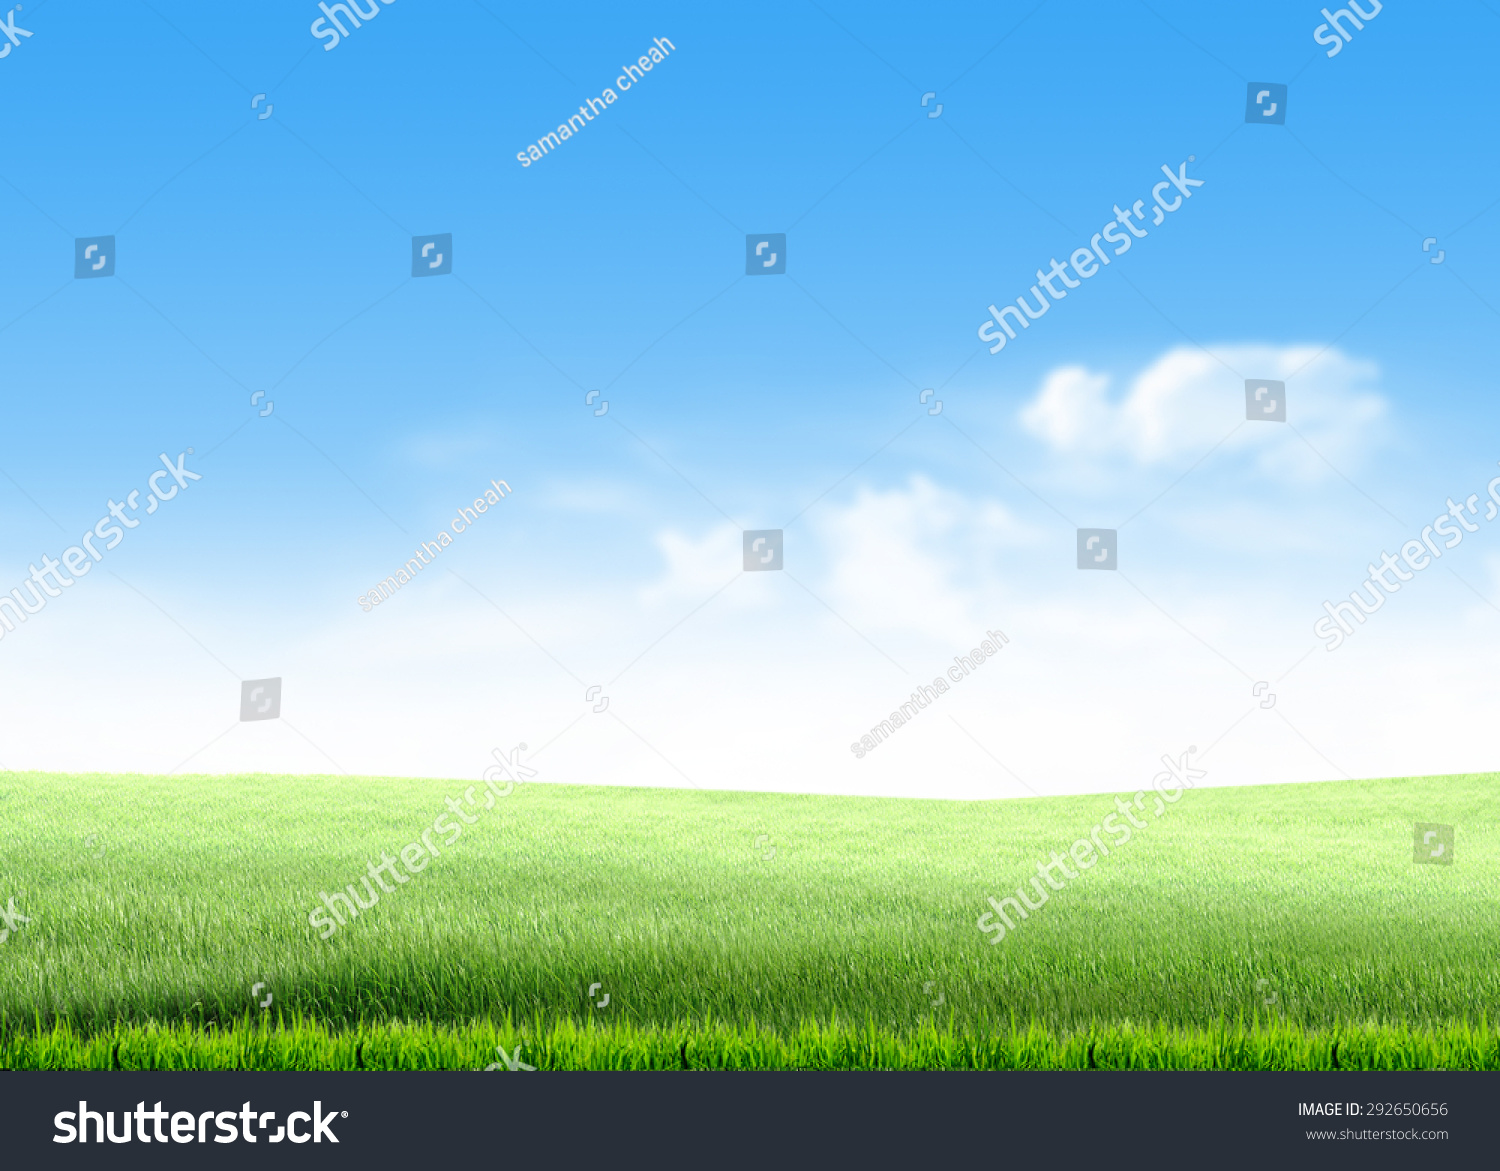 green grass hill lawn field over stock illustration 292650656